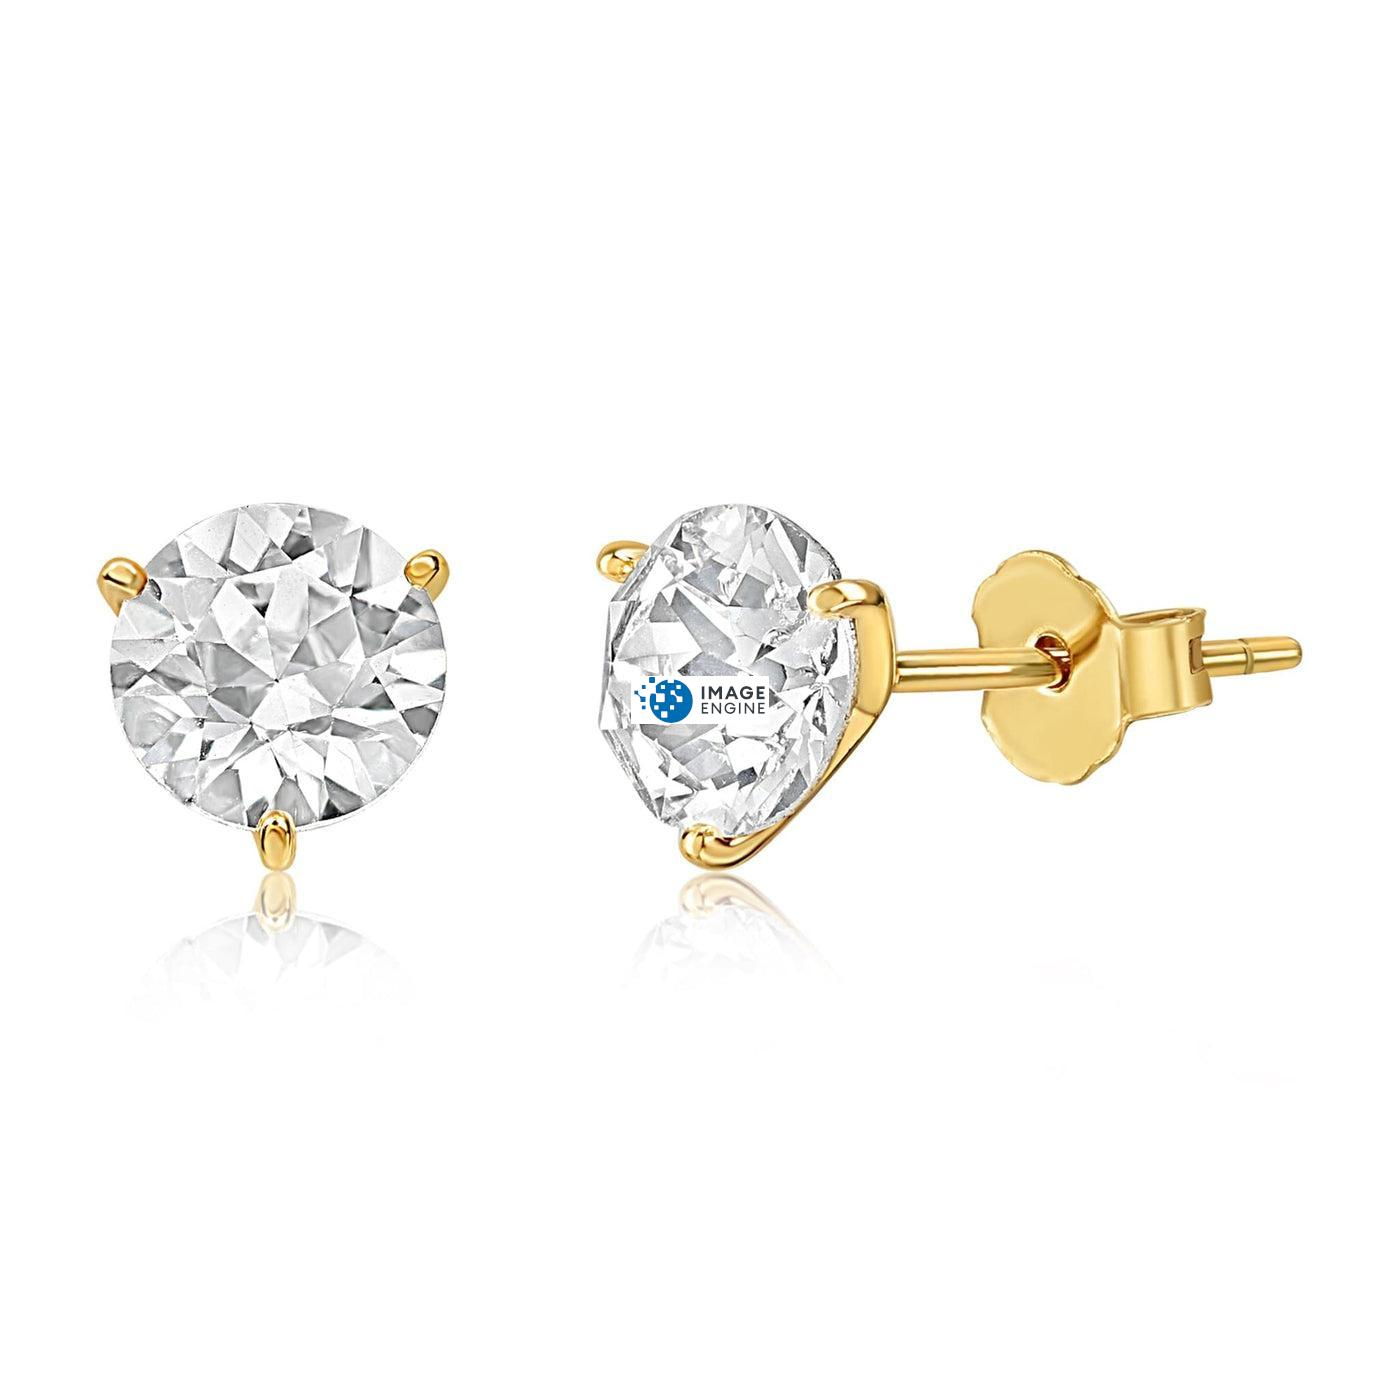 Swarovski Stud Earrings - Facing to the Left  - 18K Yellow Gold Vermeil